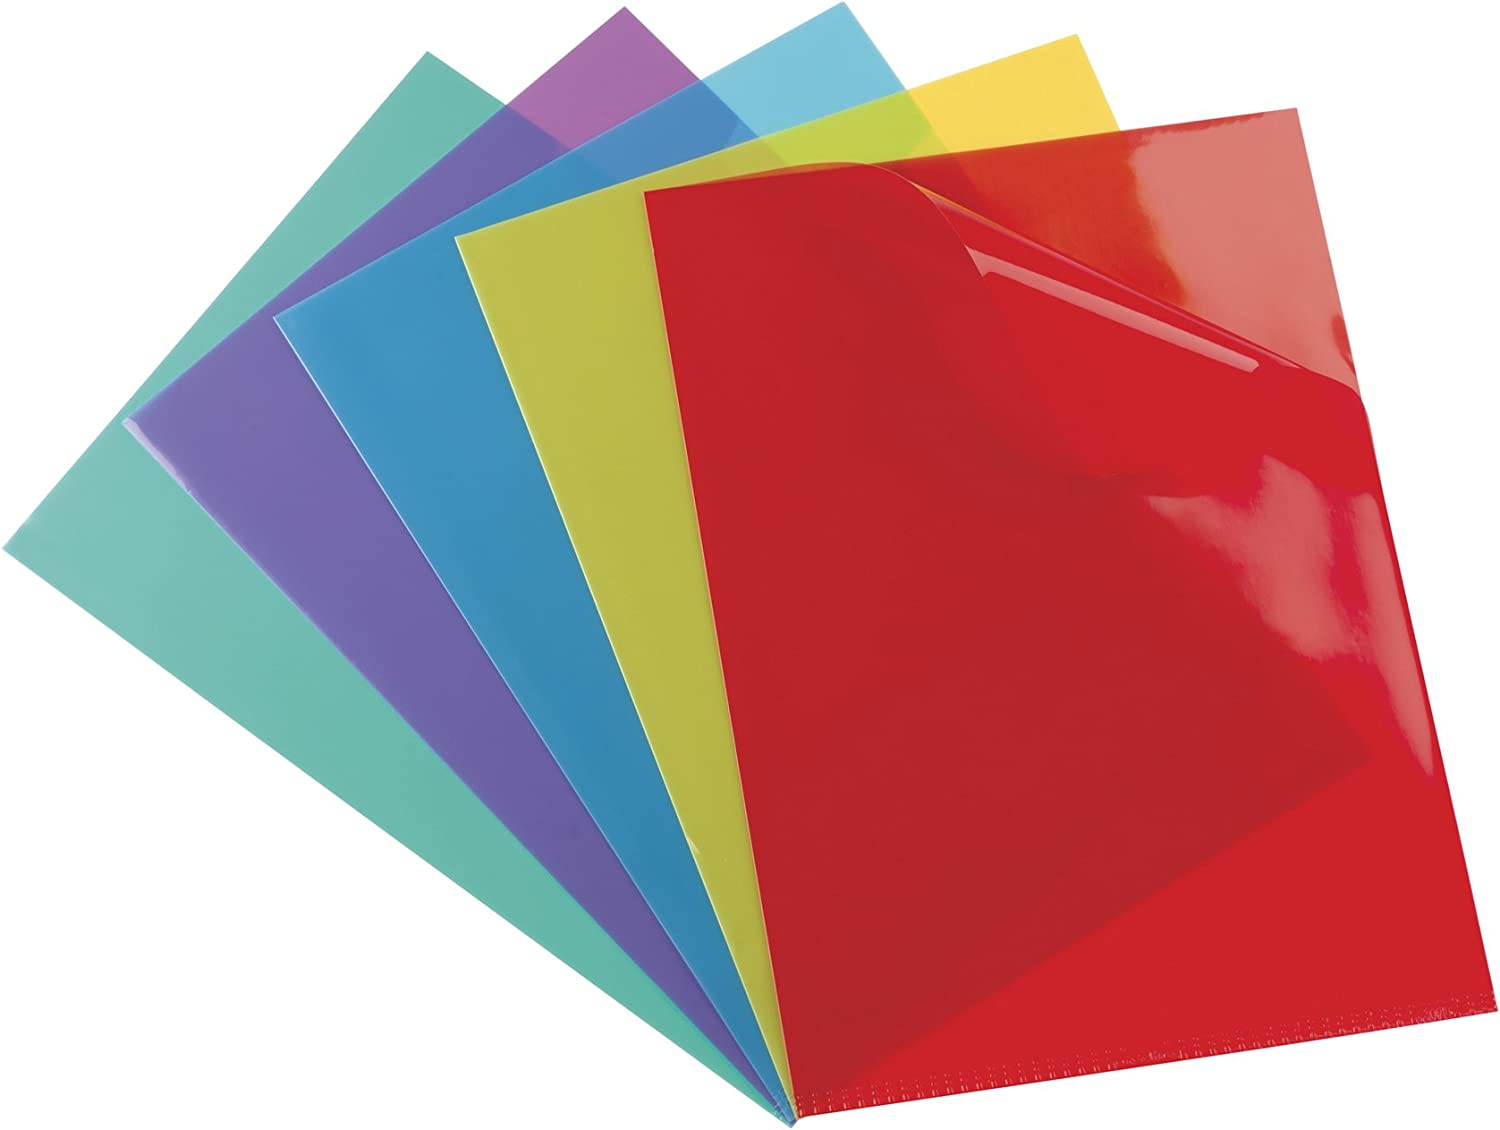 Bombing free shipping Elba Document Covers A4 Overseas parallel import regular item PVC 15 Assorted 100 Pack Colours of